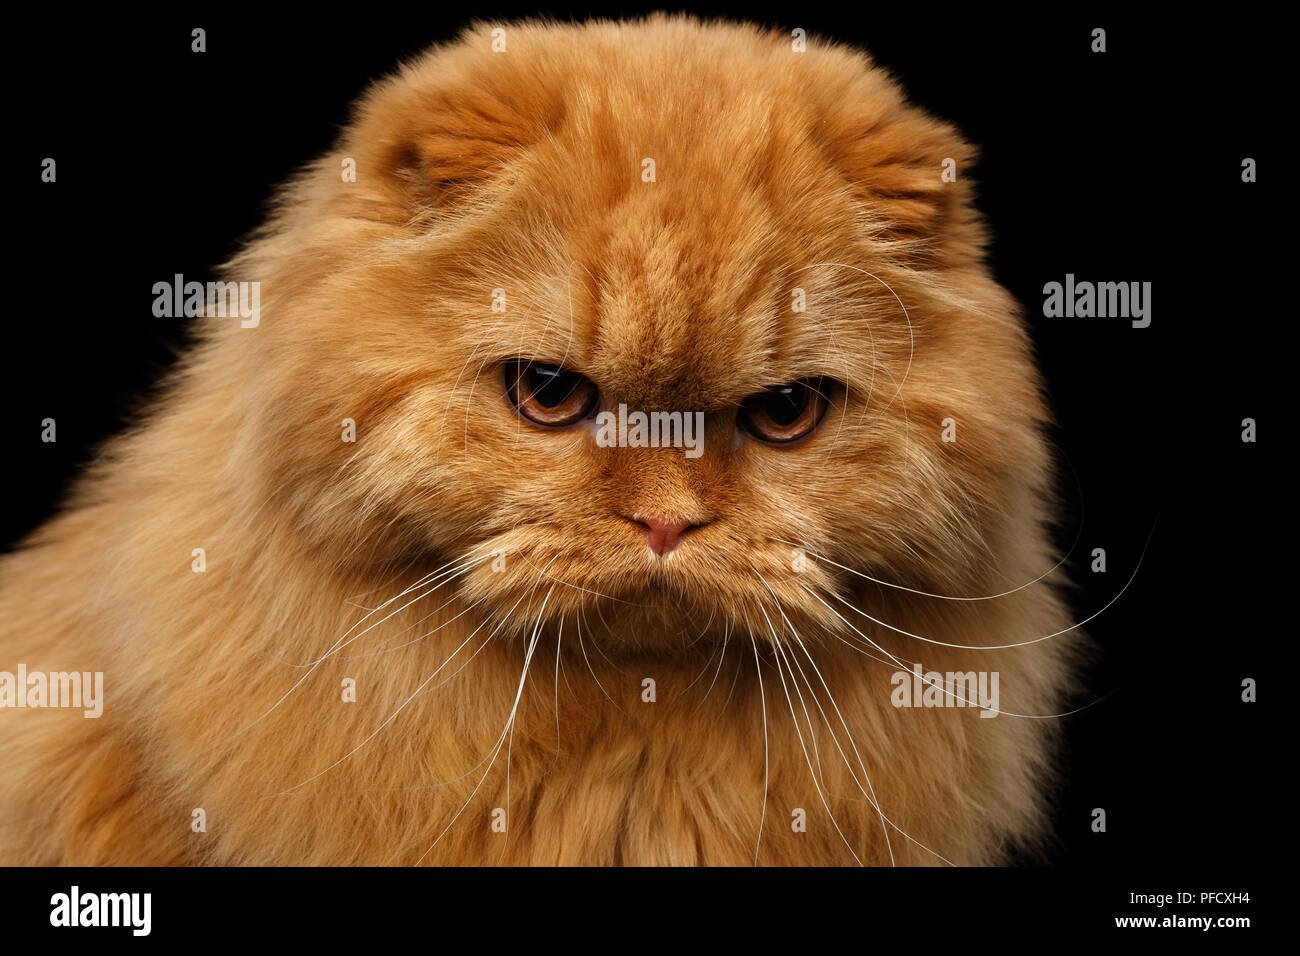 What Breed Is The Grumpy Looking Cat Grumpy Cat